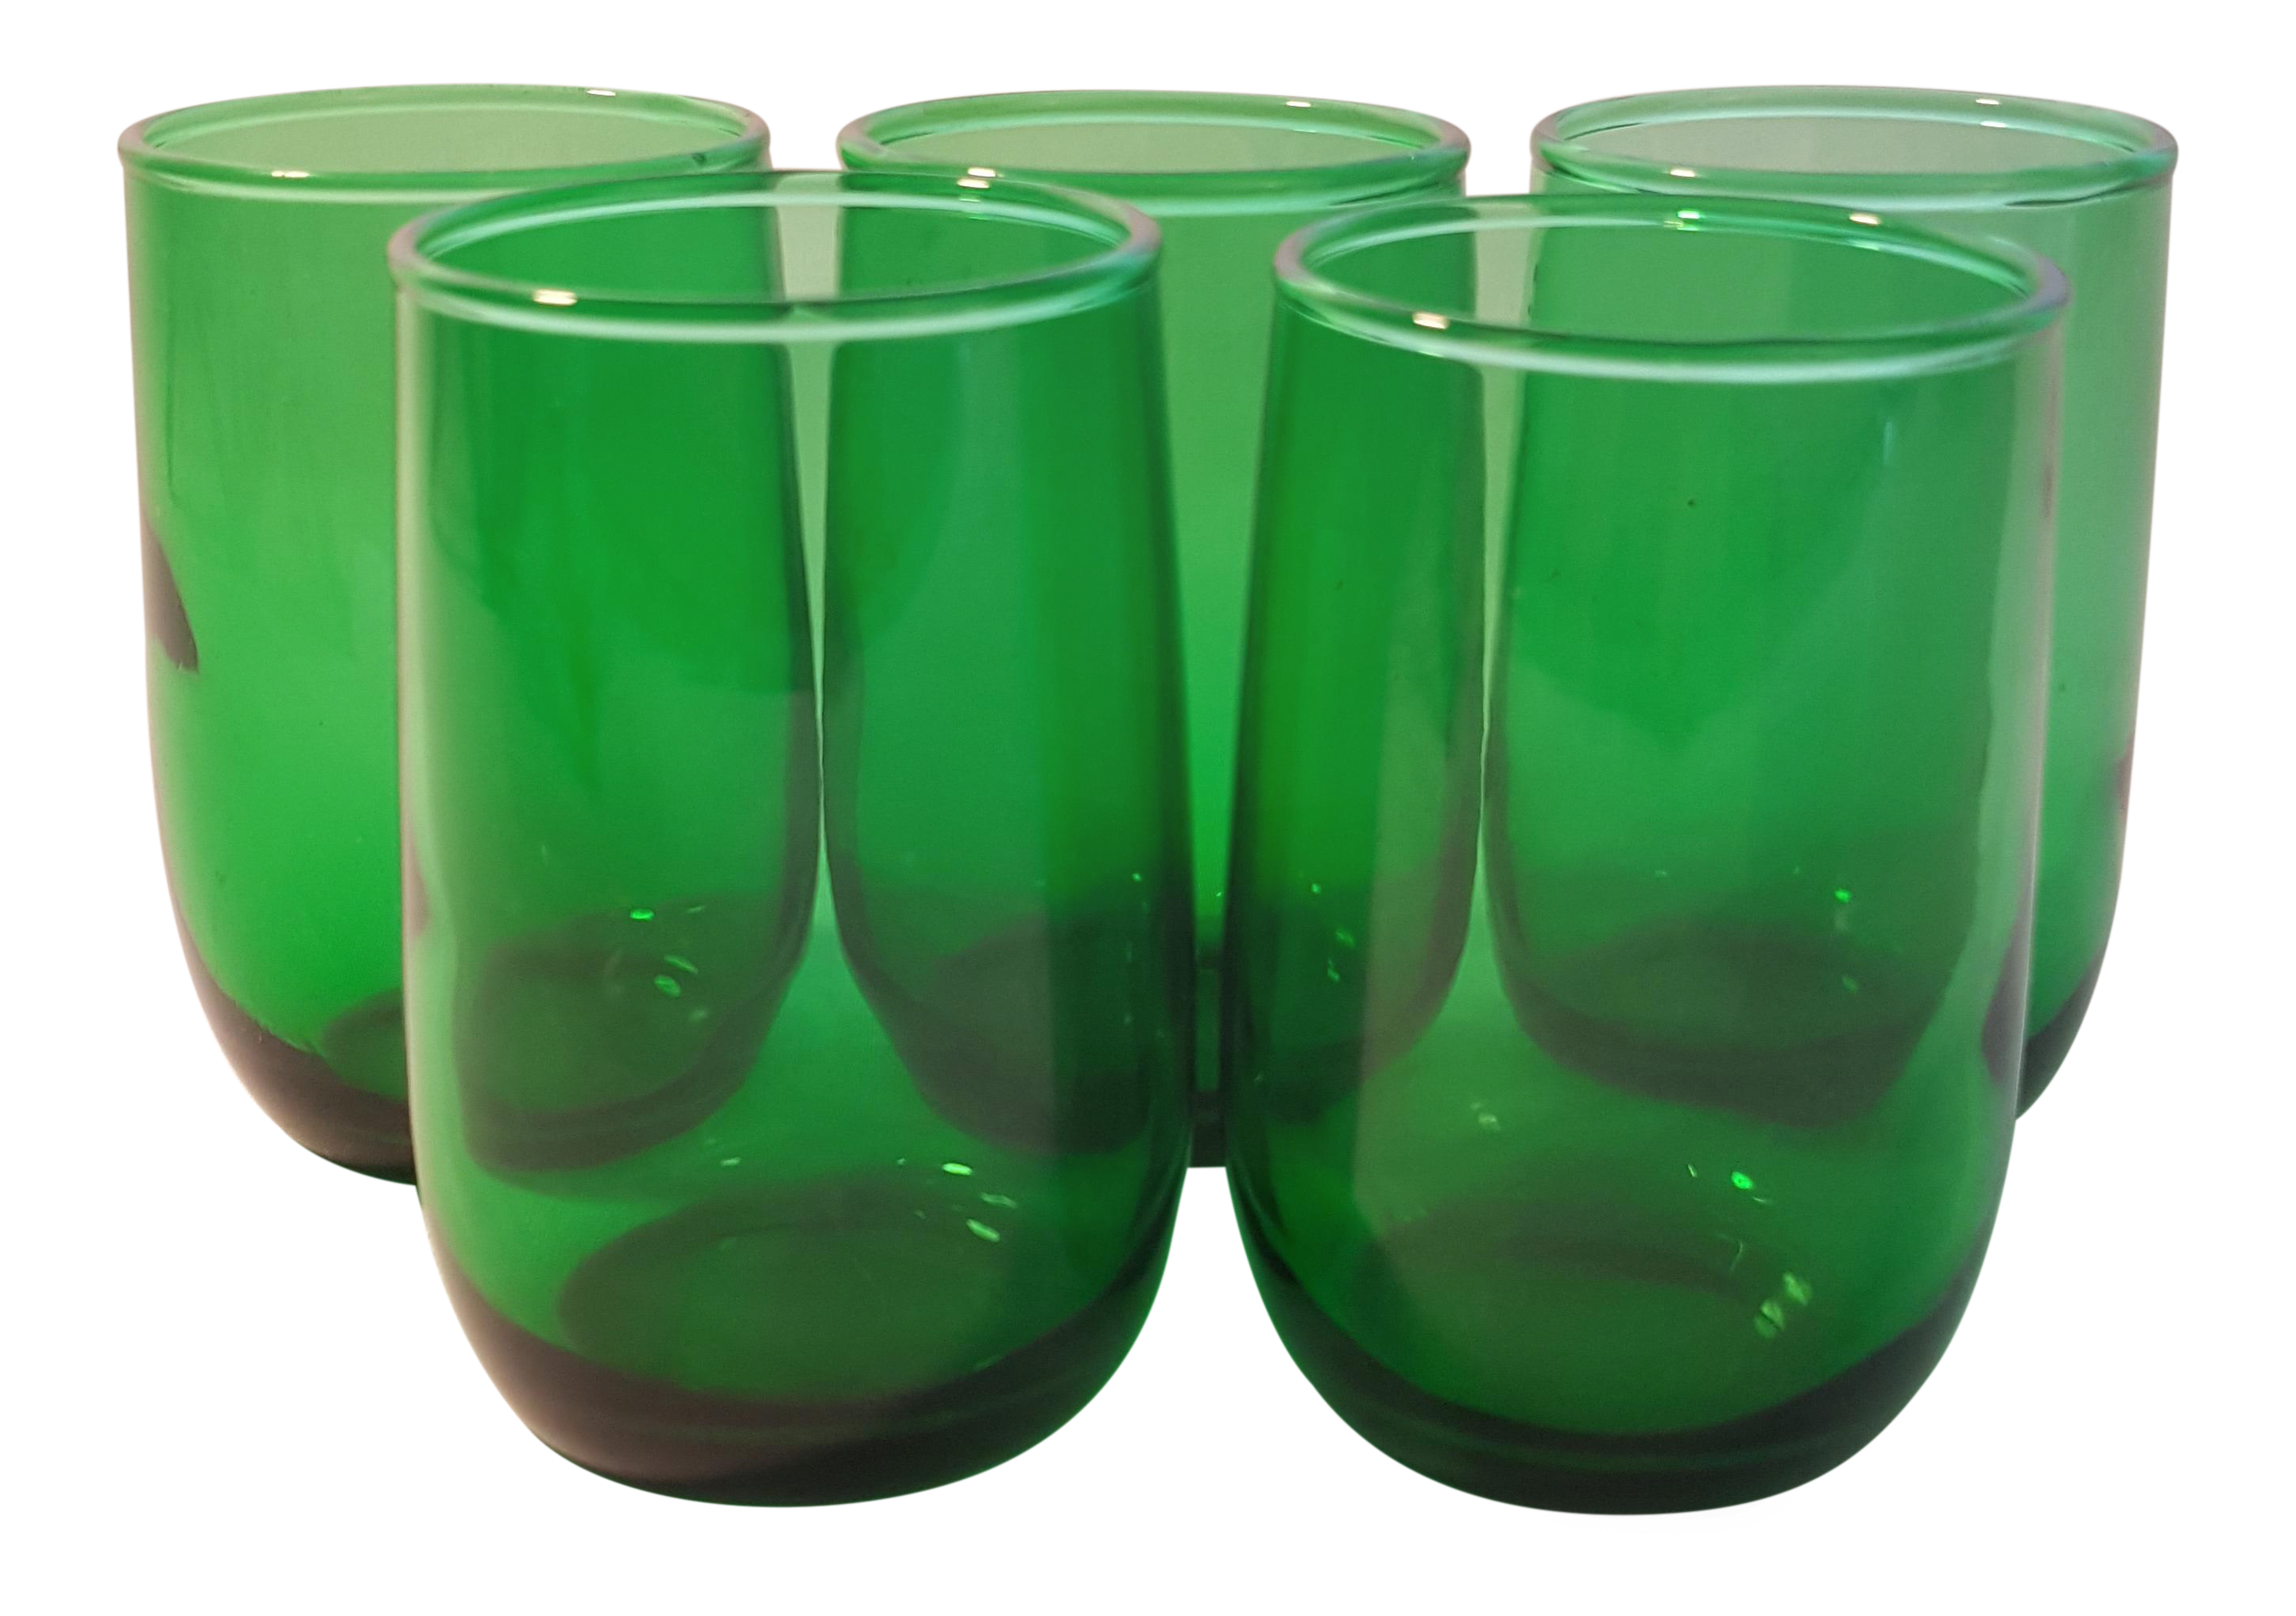 Anchor Hocking Roly Poly Forest Green 3 5oz Tumblers Set Of 5 In 2020 Green Glassware Anchor Hocking Green Drinking Glasses